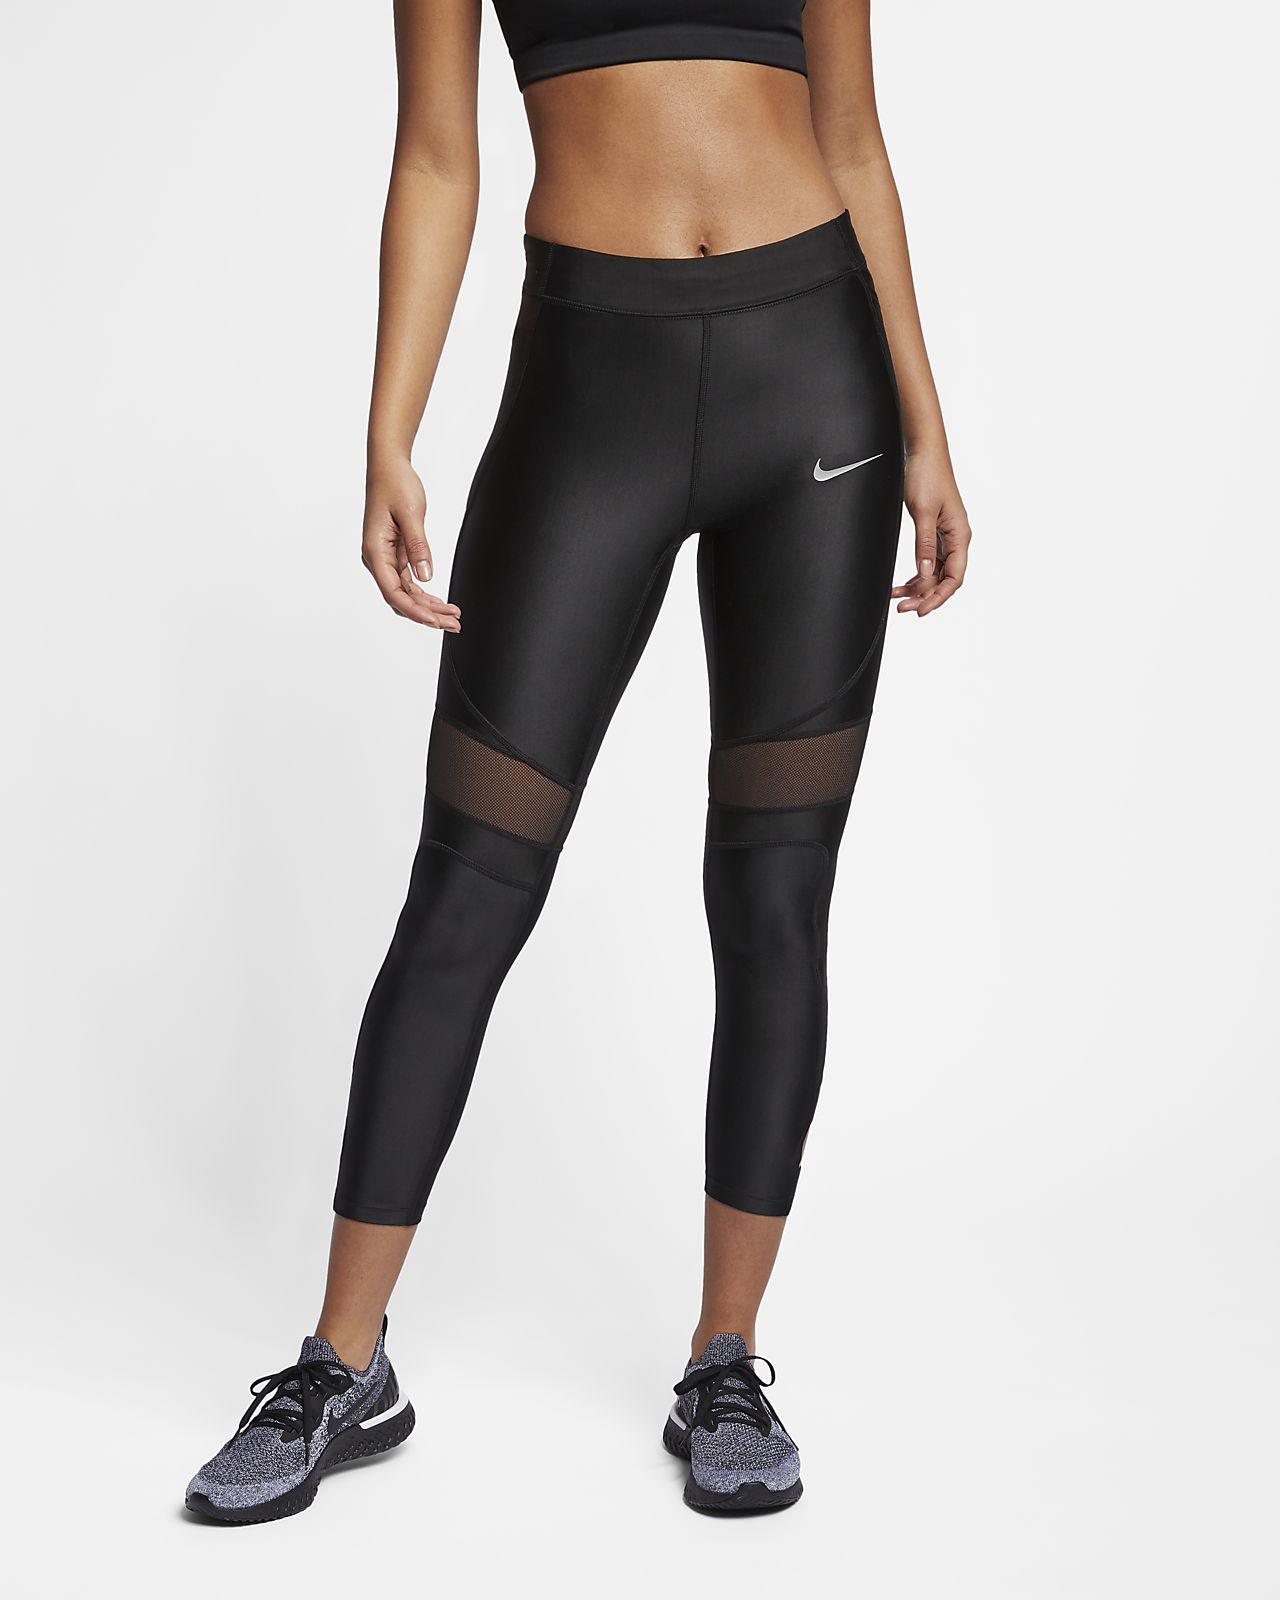 Nike Speed Women's Running Tights